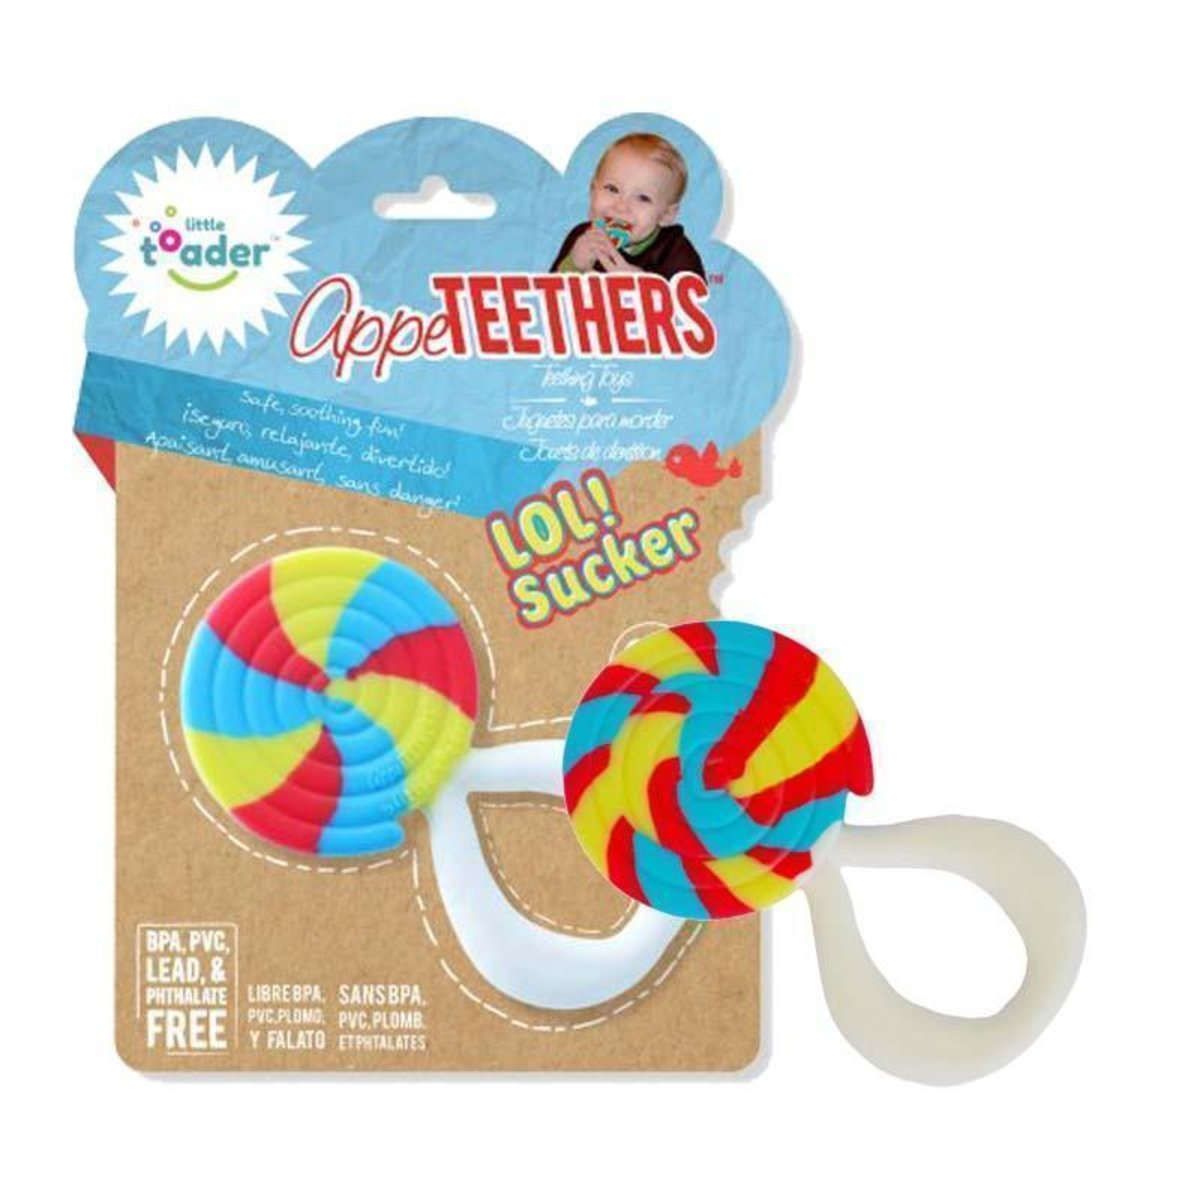 Little toader 3D appeTEETHERS Teething Toys - LOL! Sucker